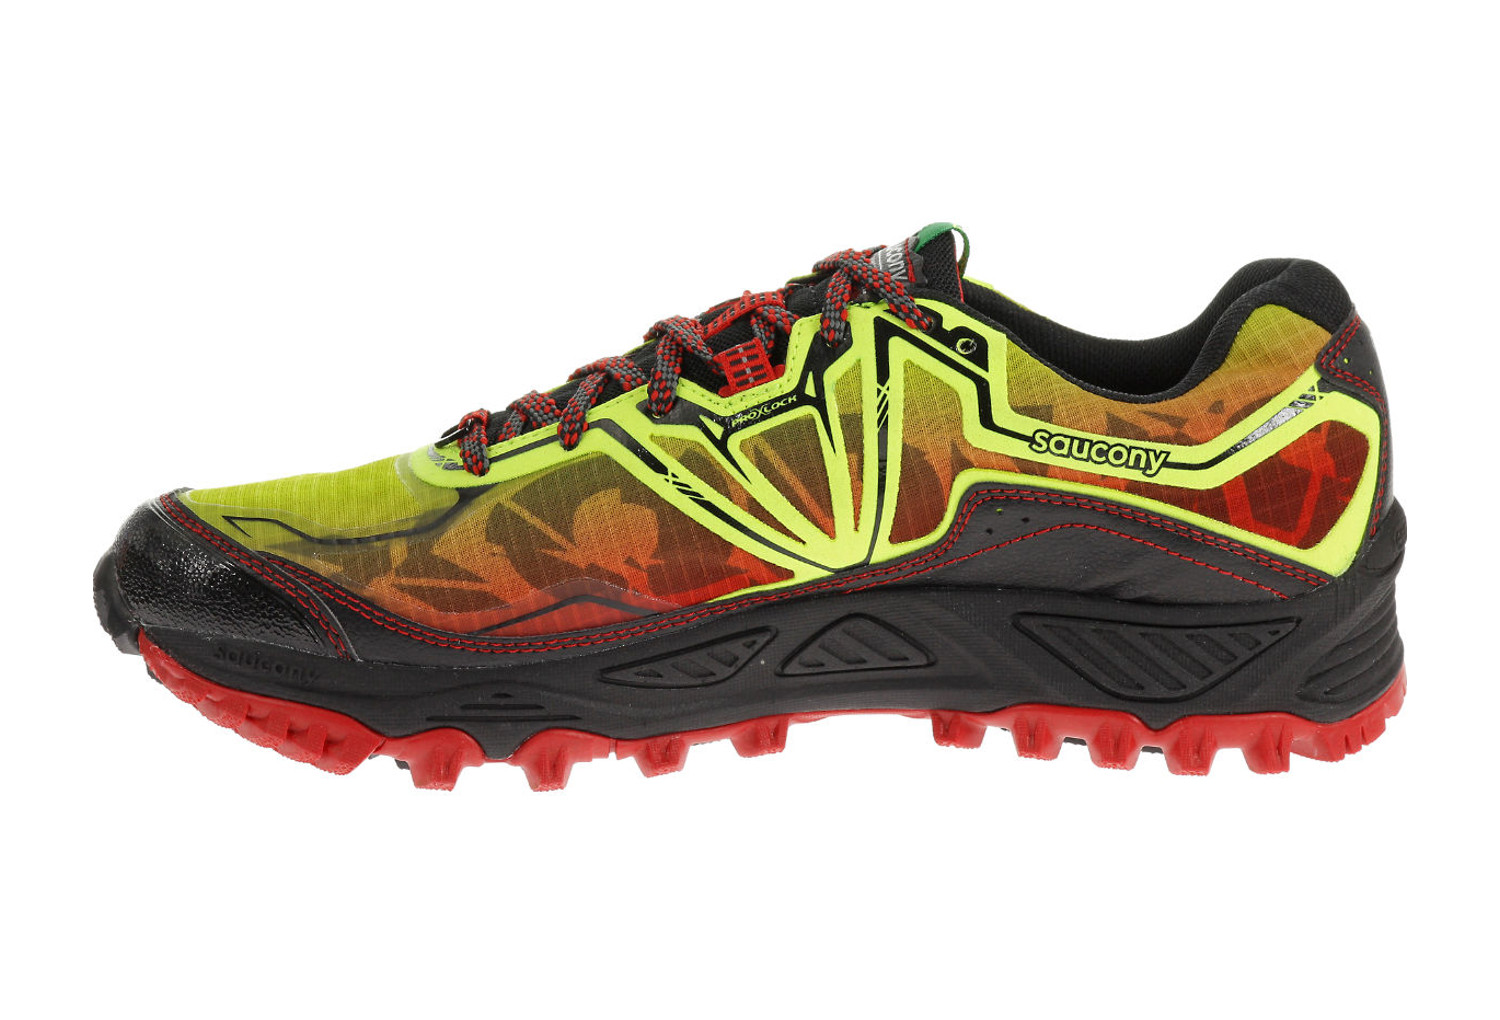 saucony shoes xodus 6 0 gtx yellow red black. Black Bedroom Furniture Sets. Home Design Ideas